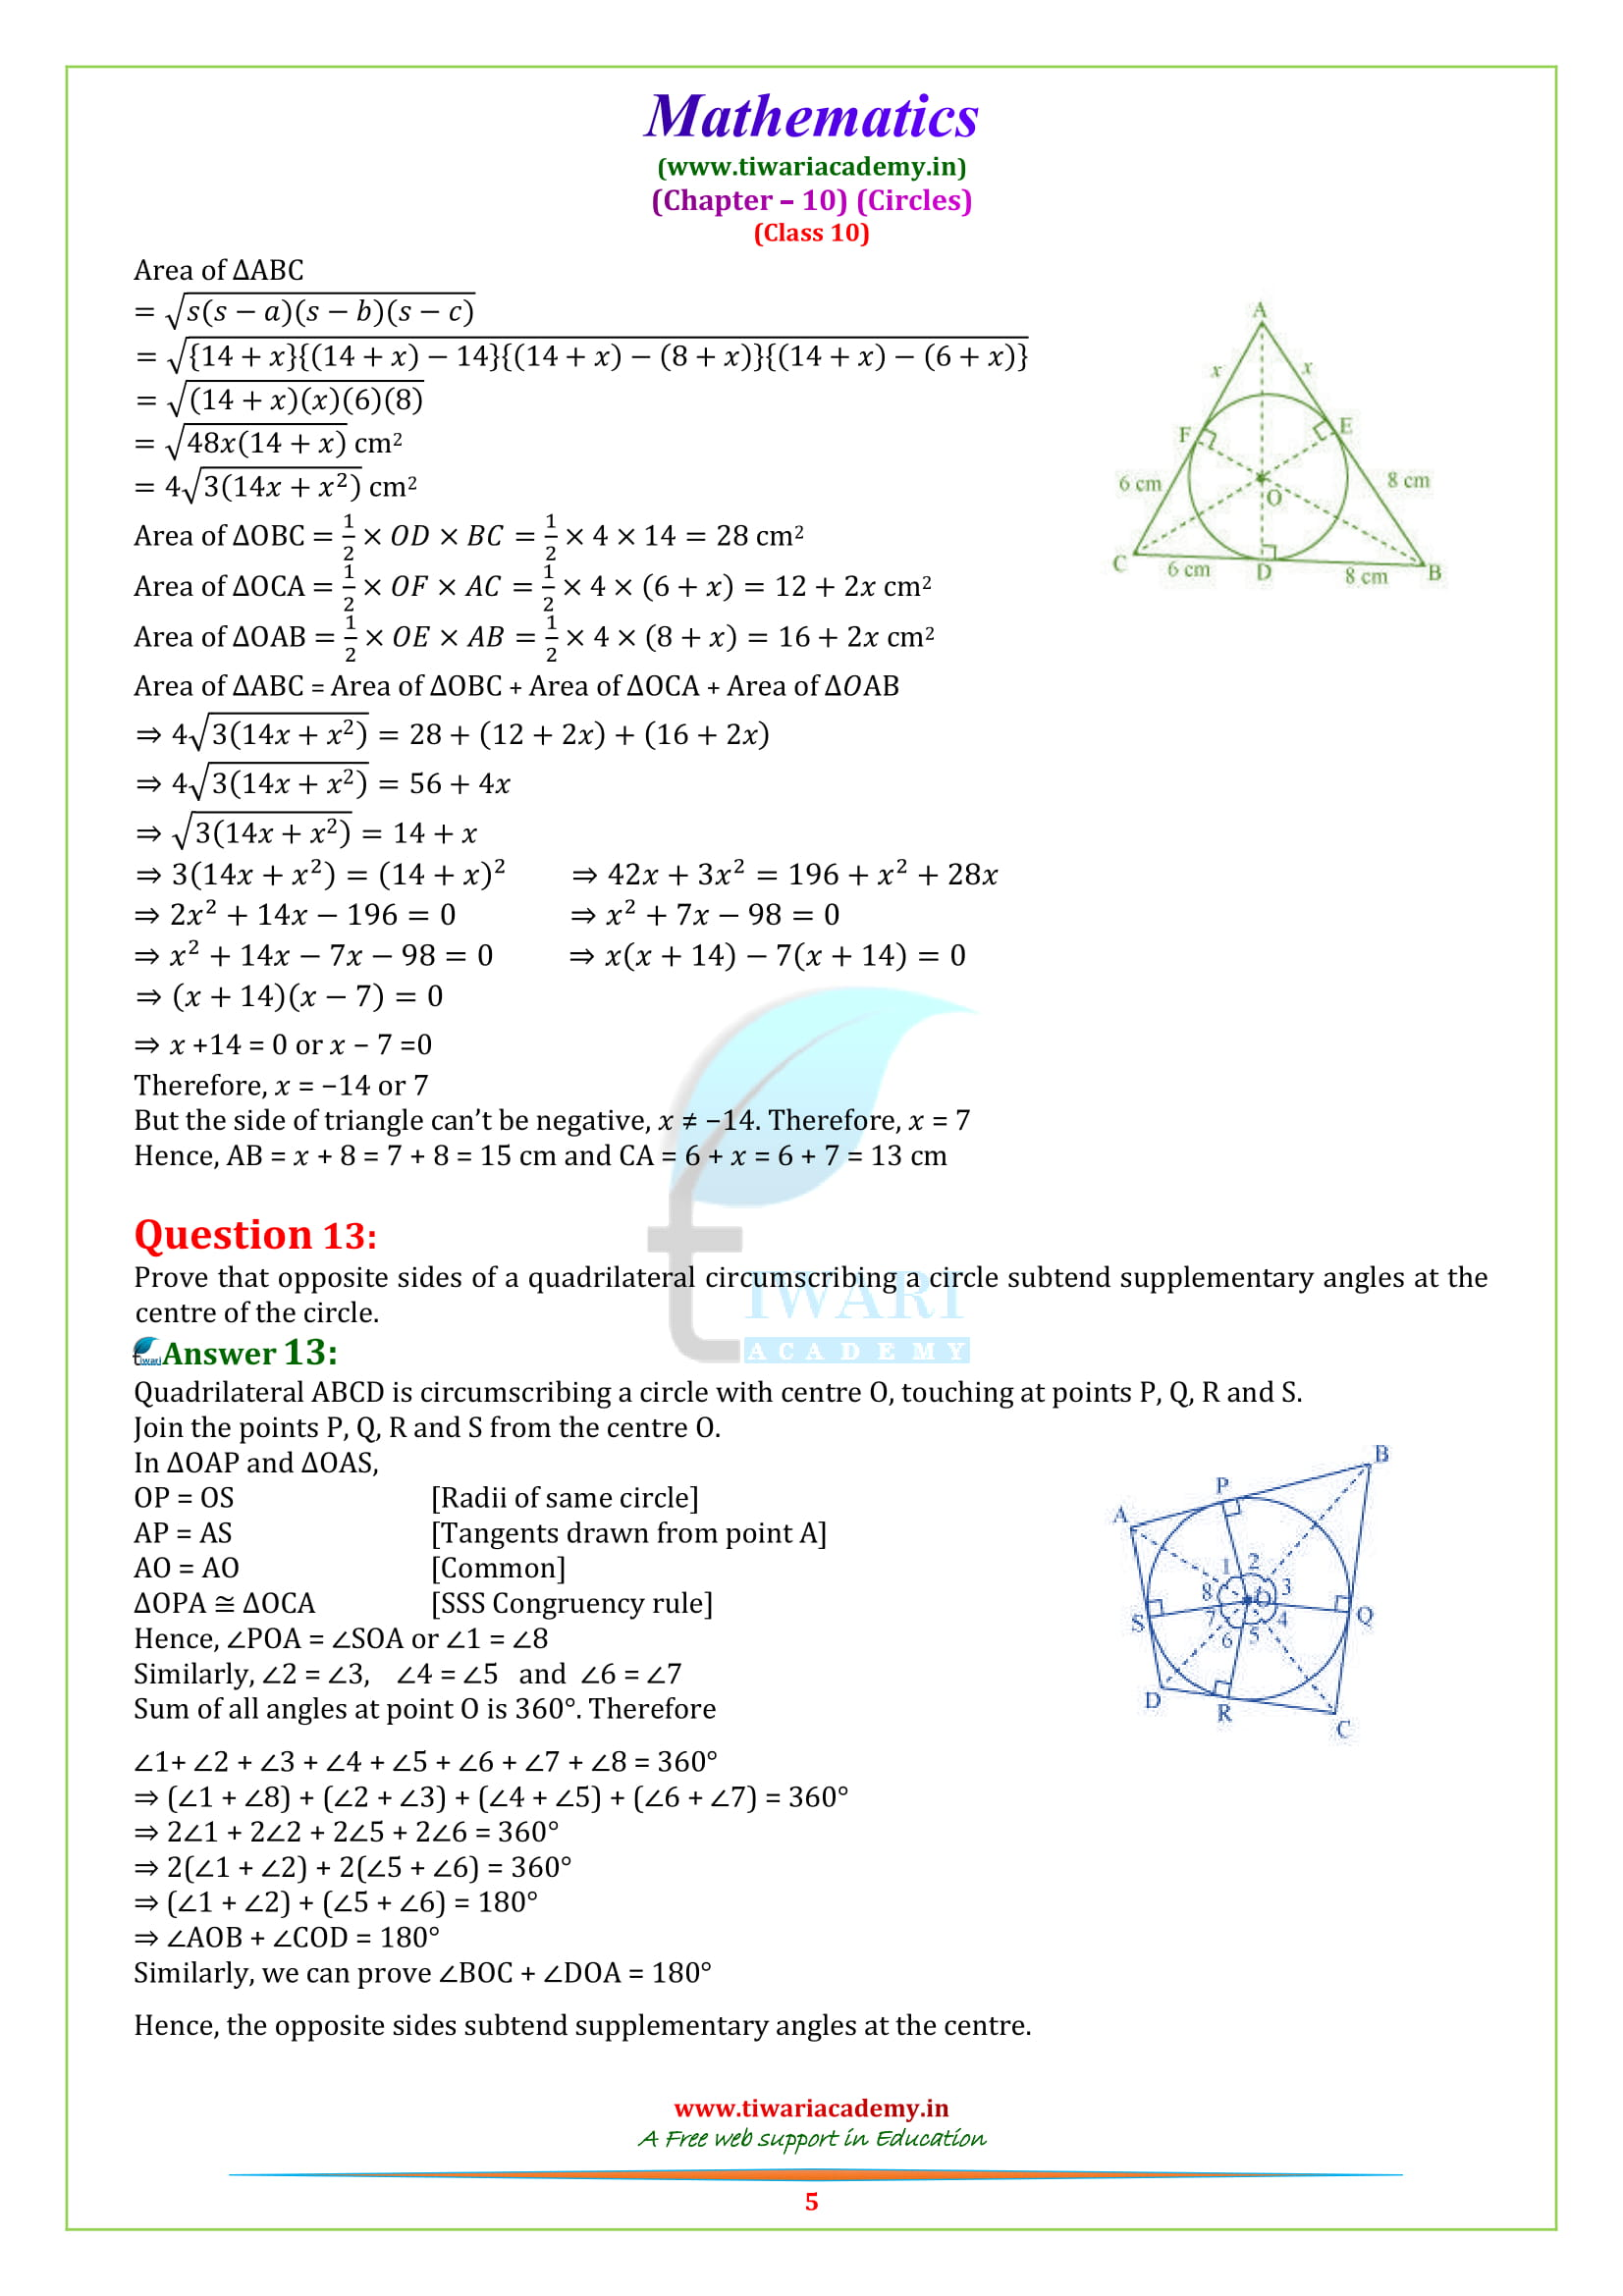 Class 10 Maths exercise 10.2 solutions as guide